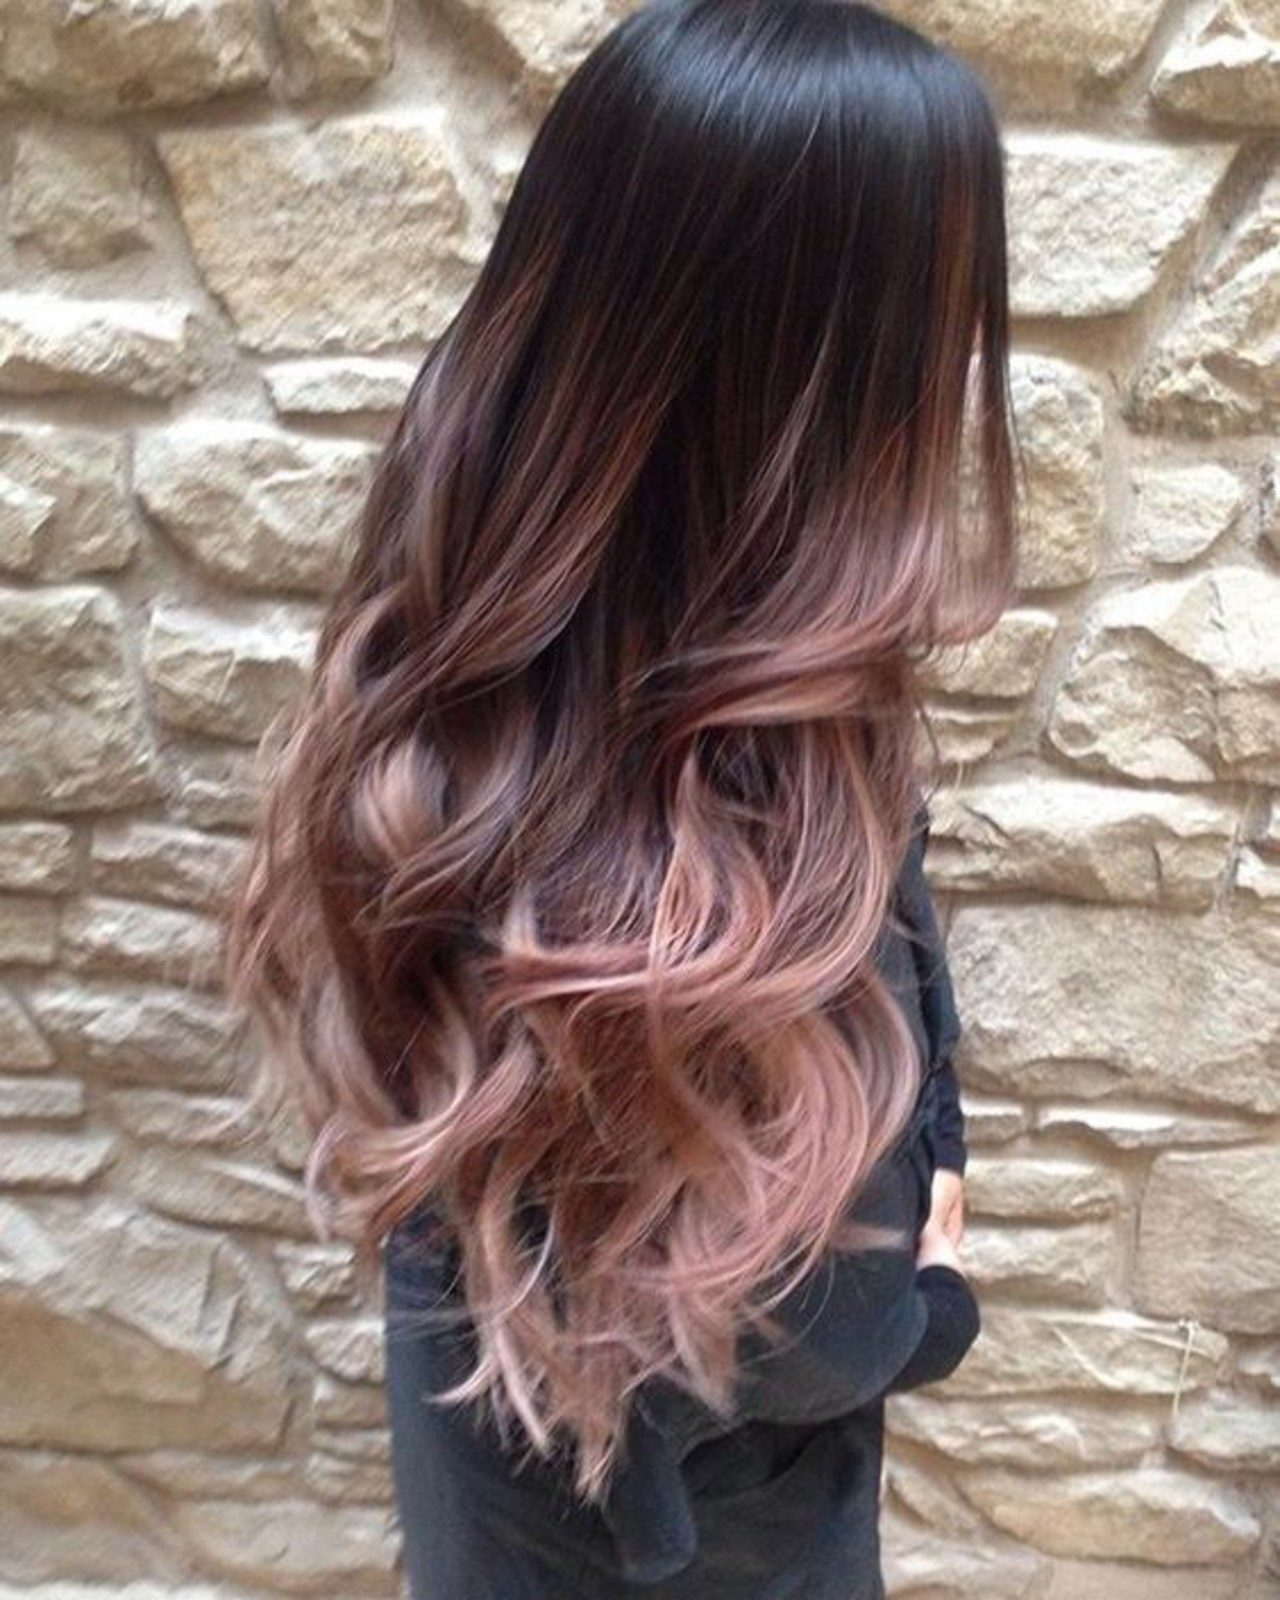 coloration-tendance-rose-gold-hair-pinterest-overtonecolor-c71746ffb143607e49d5d88540d074e02-9079270